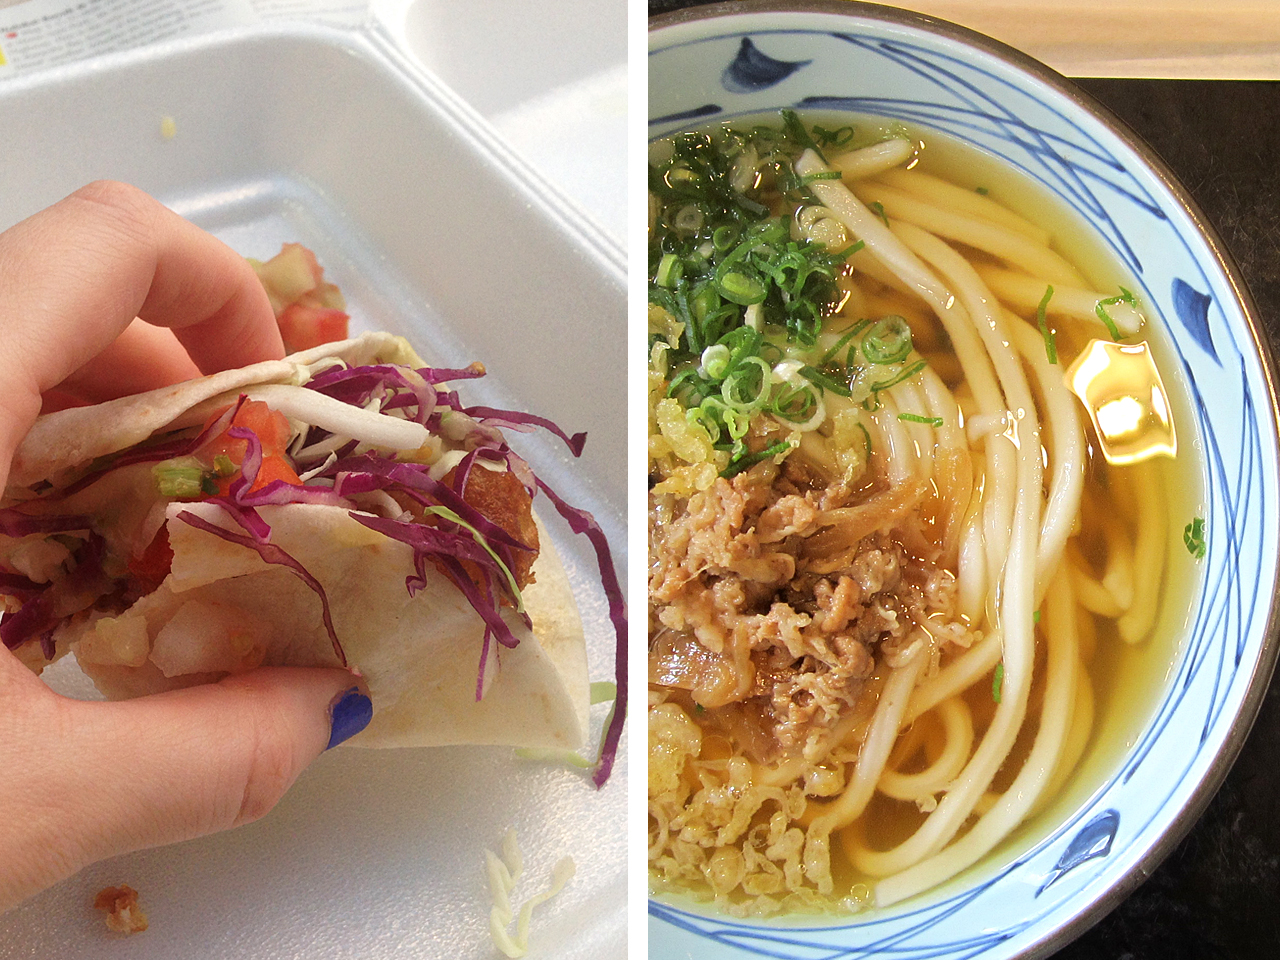 We found some amazing cheap eats just off the main strip in Waikiki, our favourite taco place Surf n' Turf tacos which we frequented many times and a great udon and tempura Japanese restaurant that had fried chicken tempura!